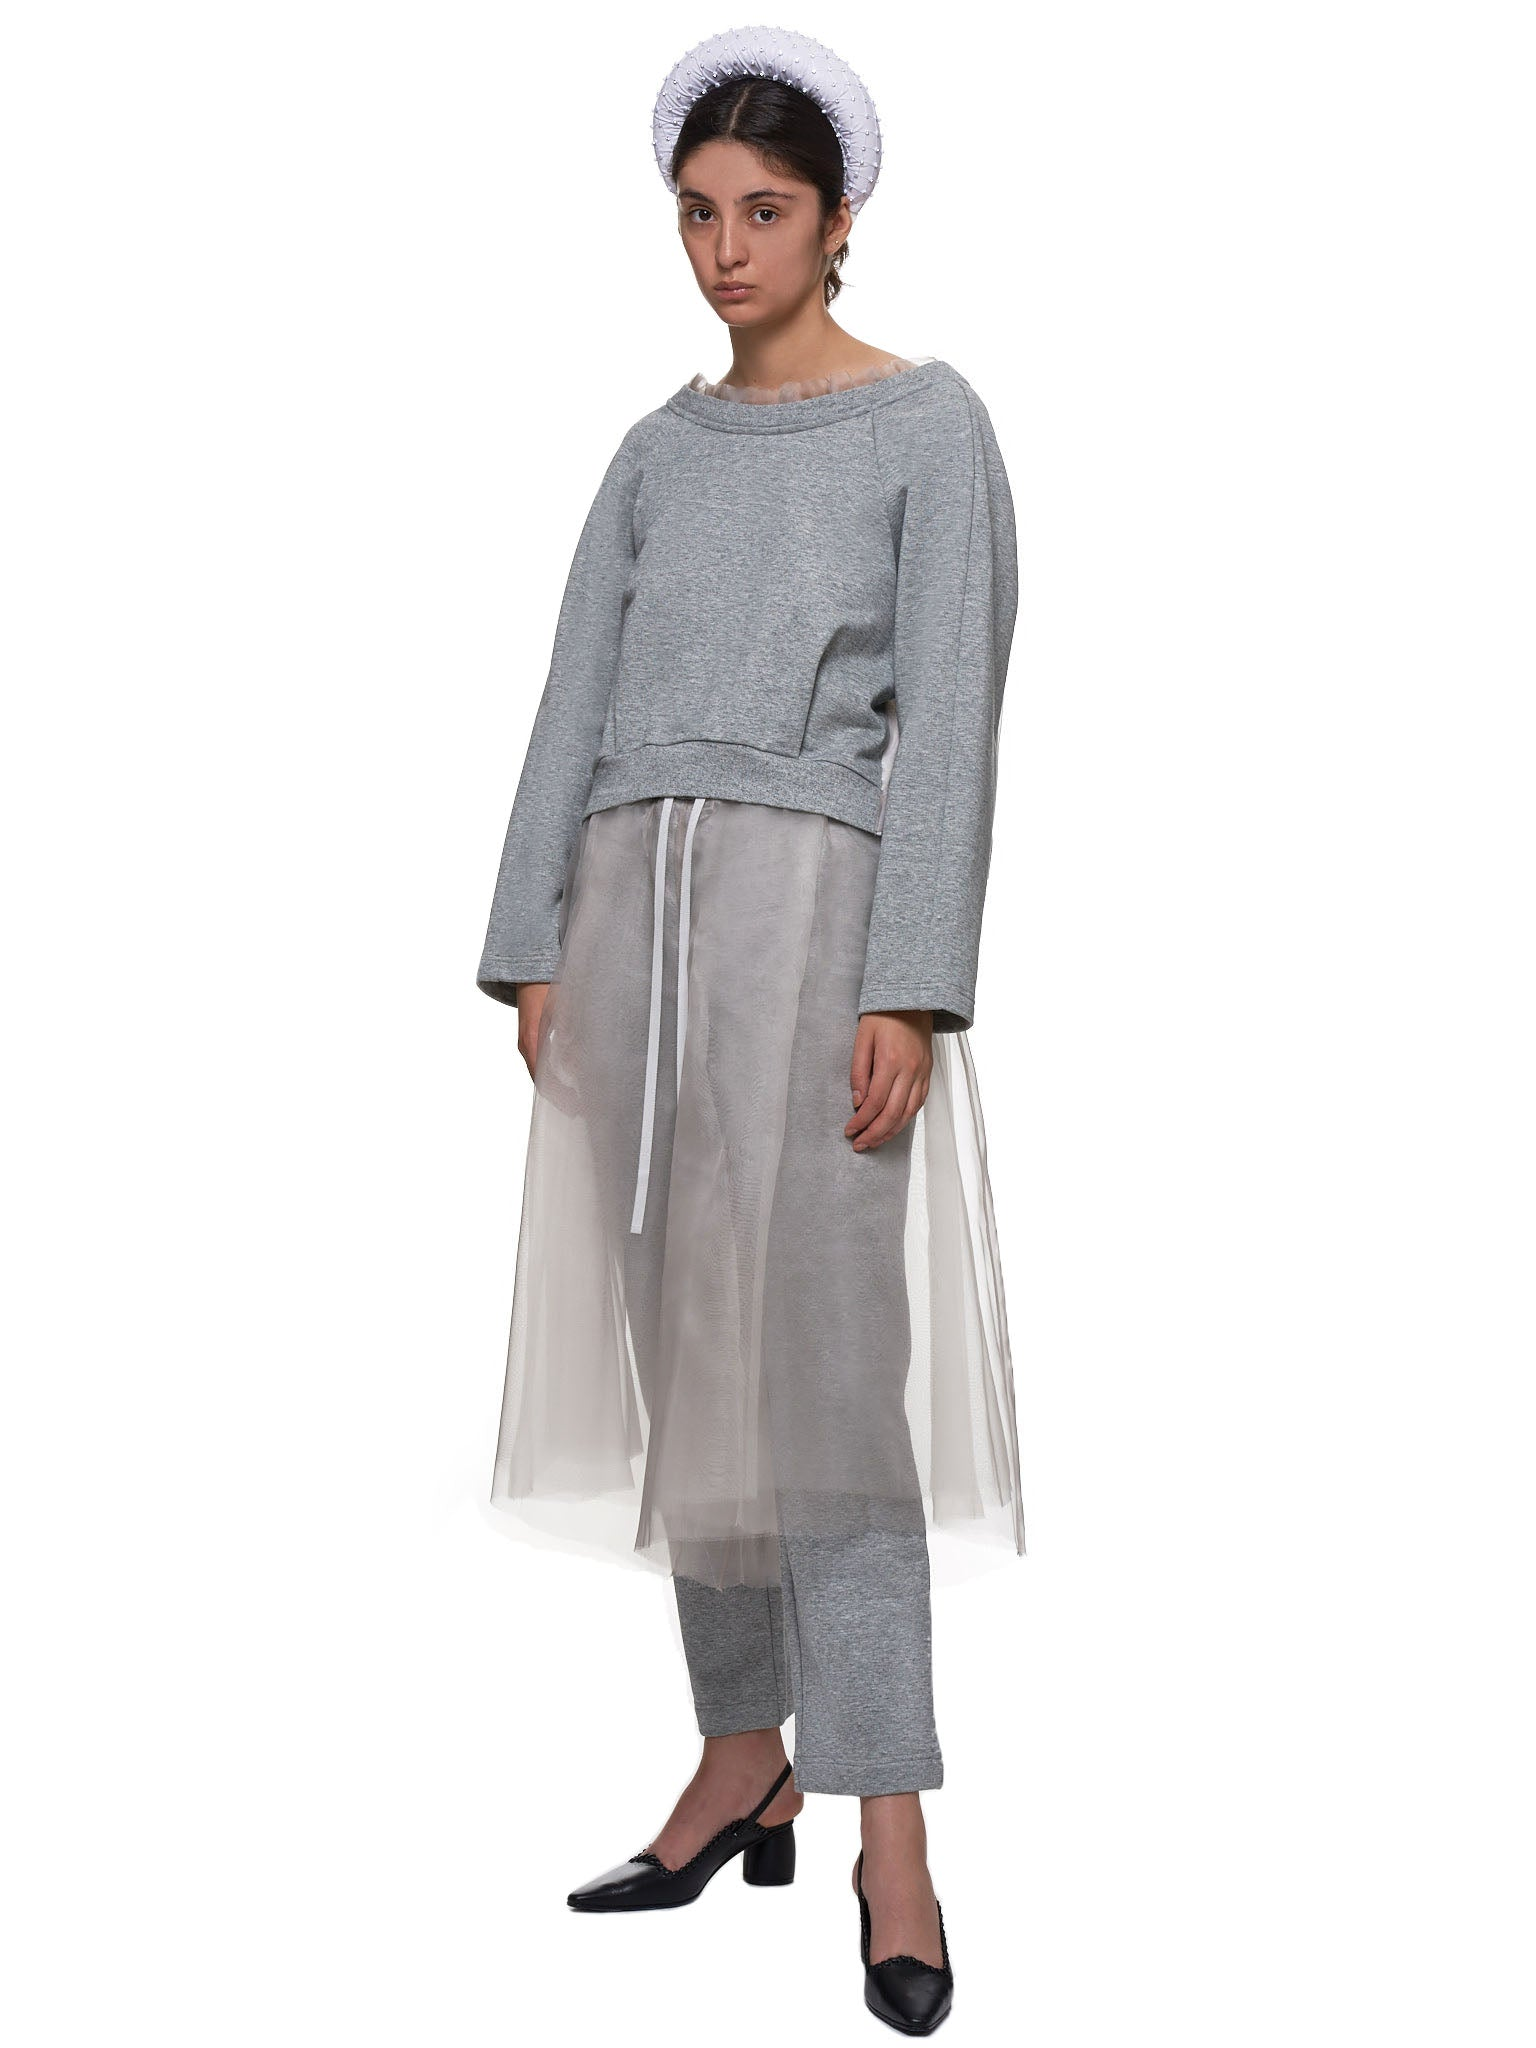 Organza Layered Skirt Trousers (PT32-LIGHT-GREY)